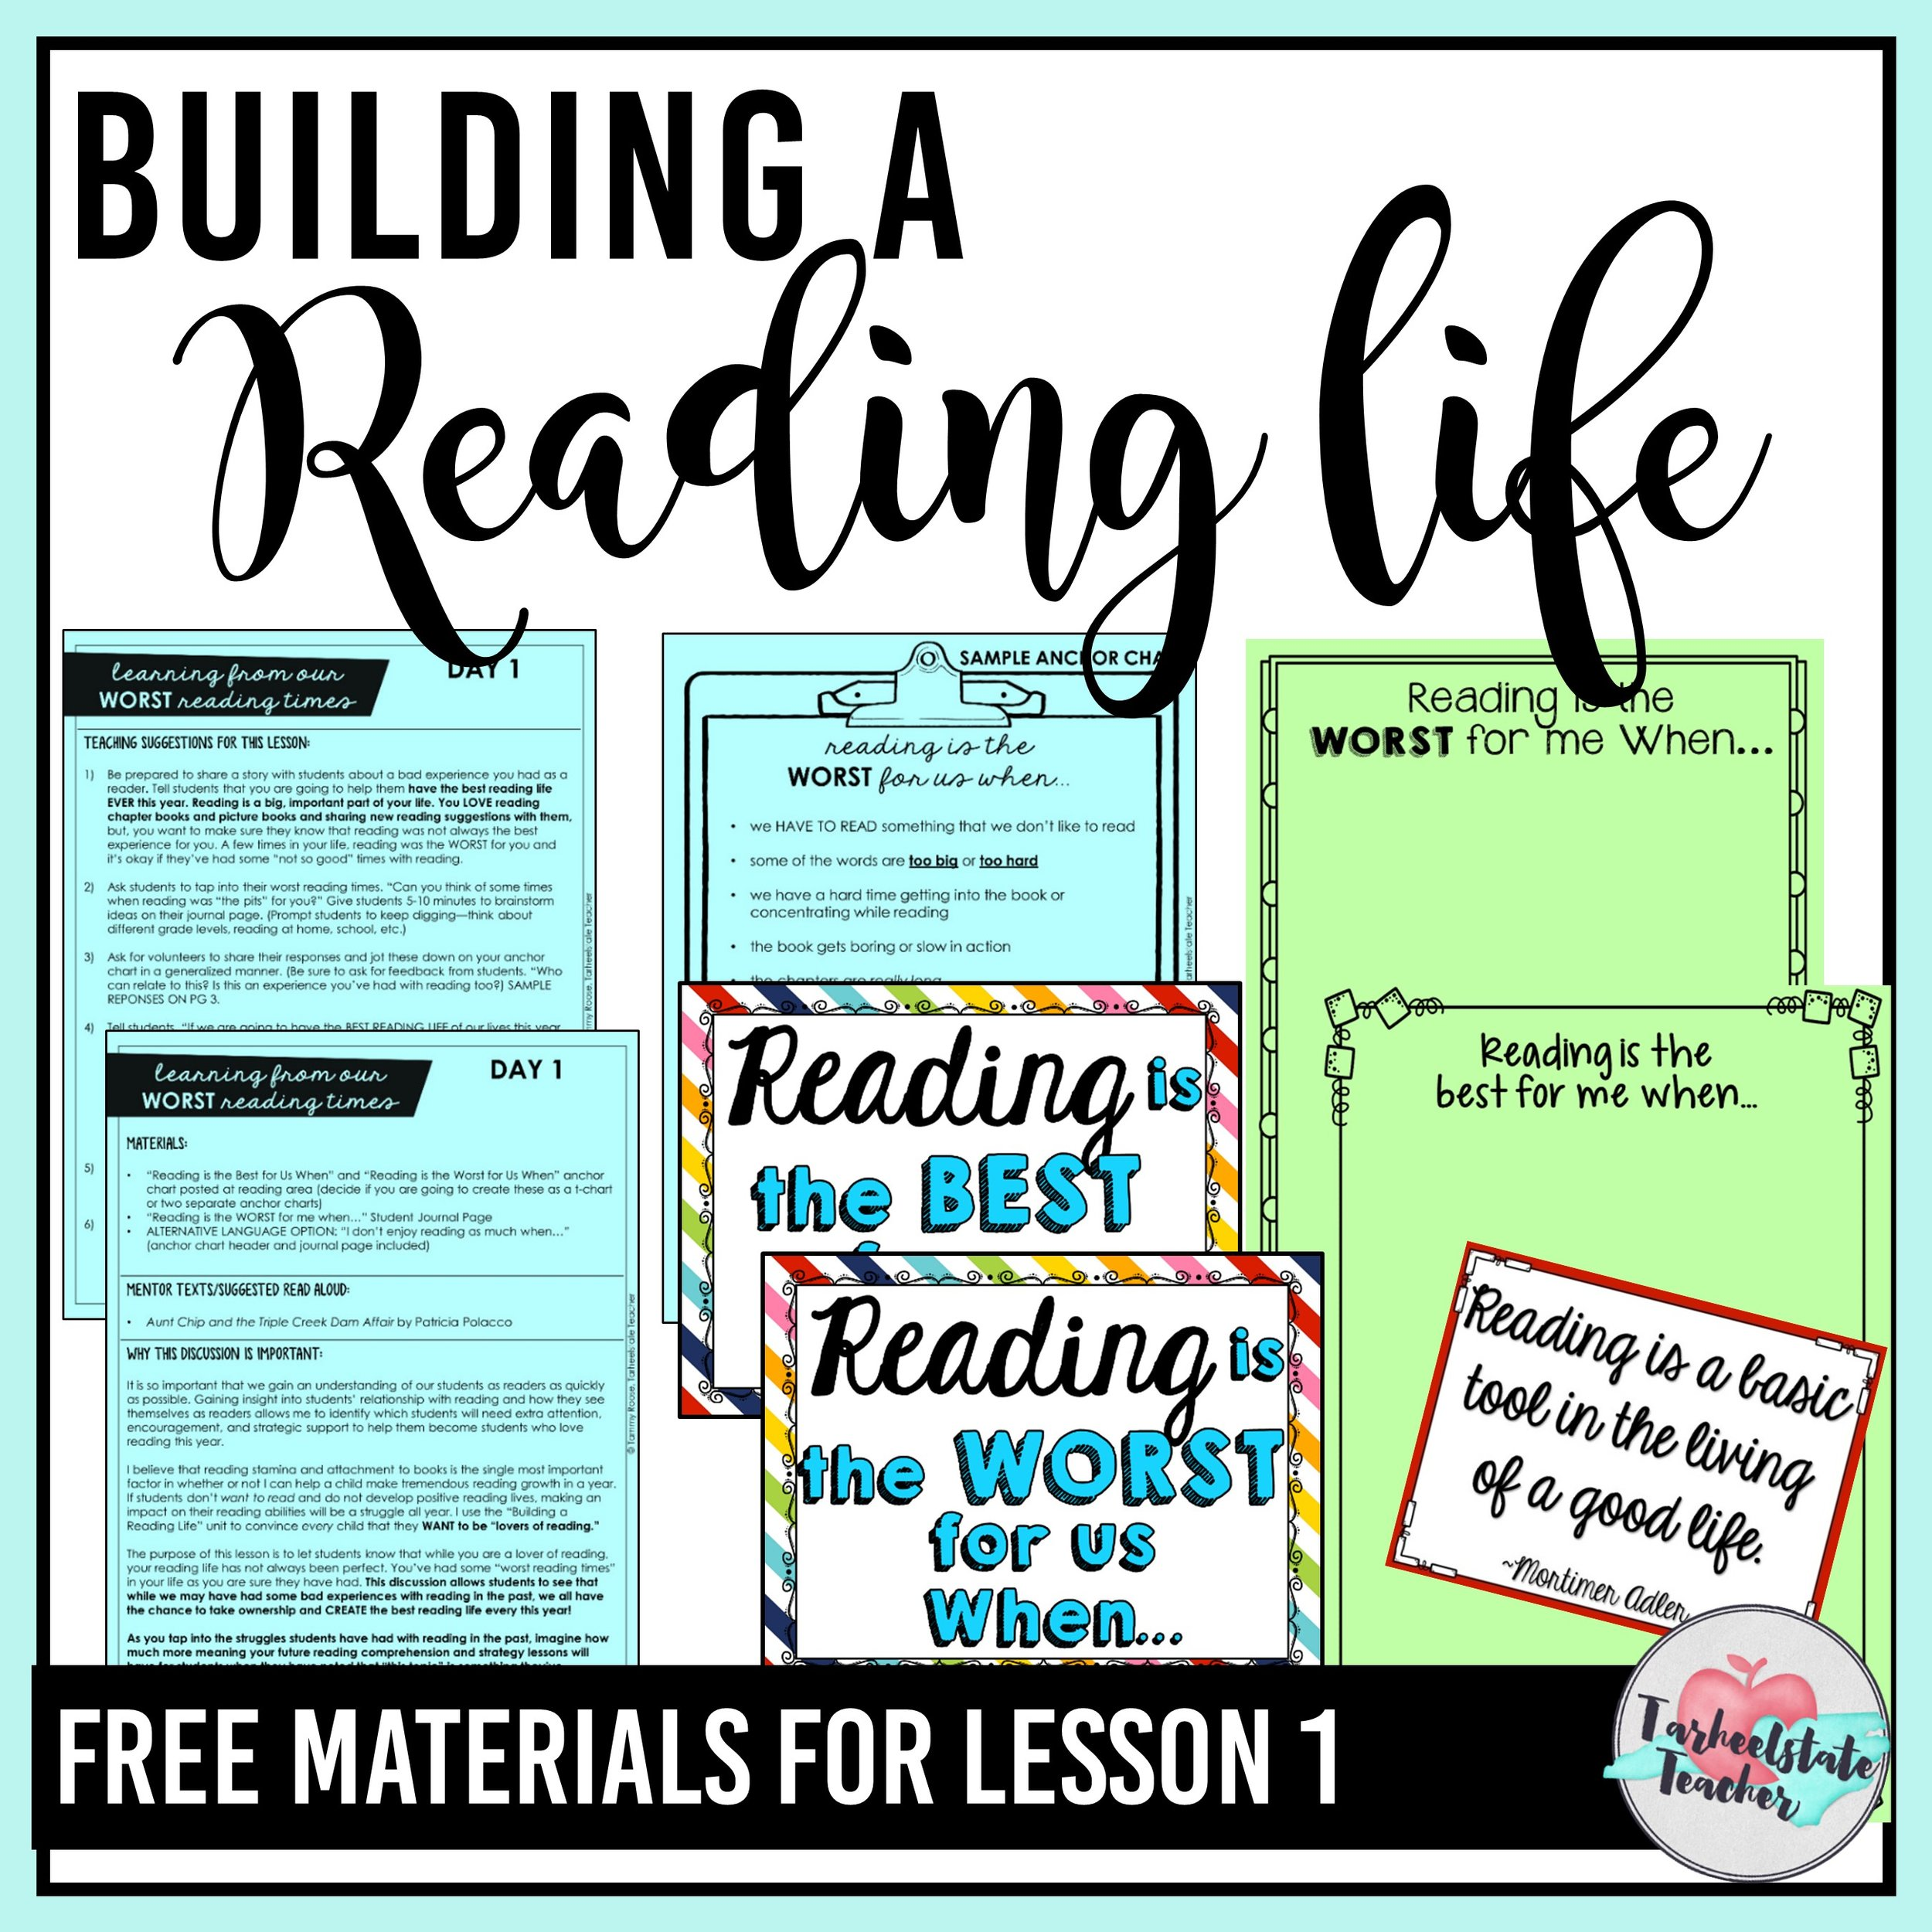 launching readers workshop lesson 1 materials.jpg